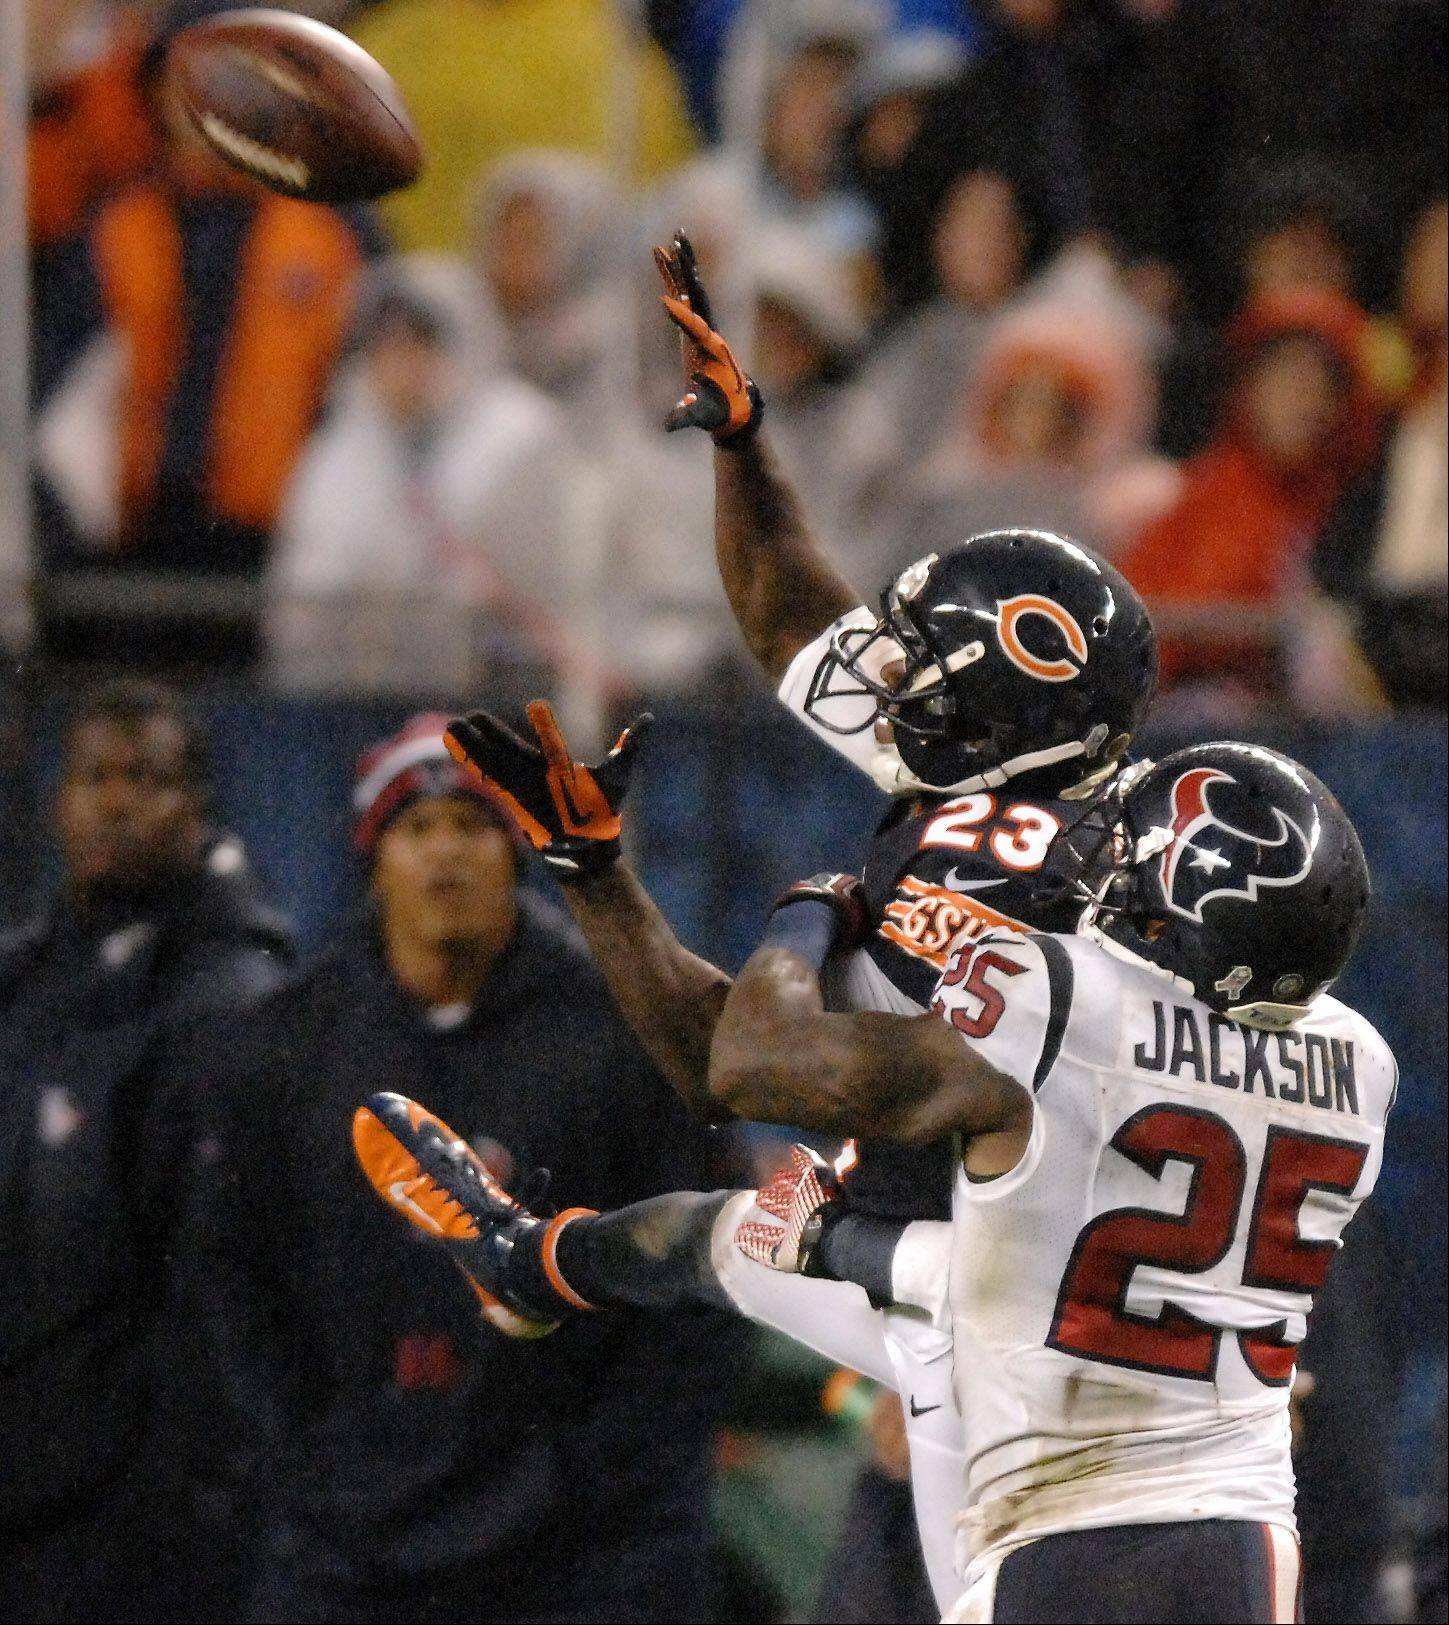 Houston Texans cornerback Kareem Jackson (25) breaks up a pass intended for Chicago Bears wide receiver Devin Hester (23) during Sunday's game at Soldier Field in Chicago.